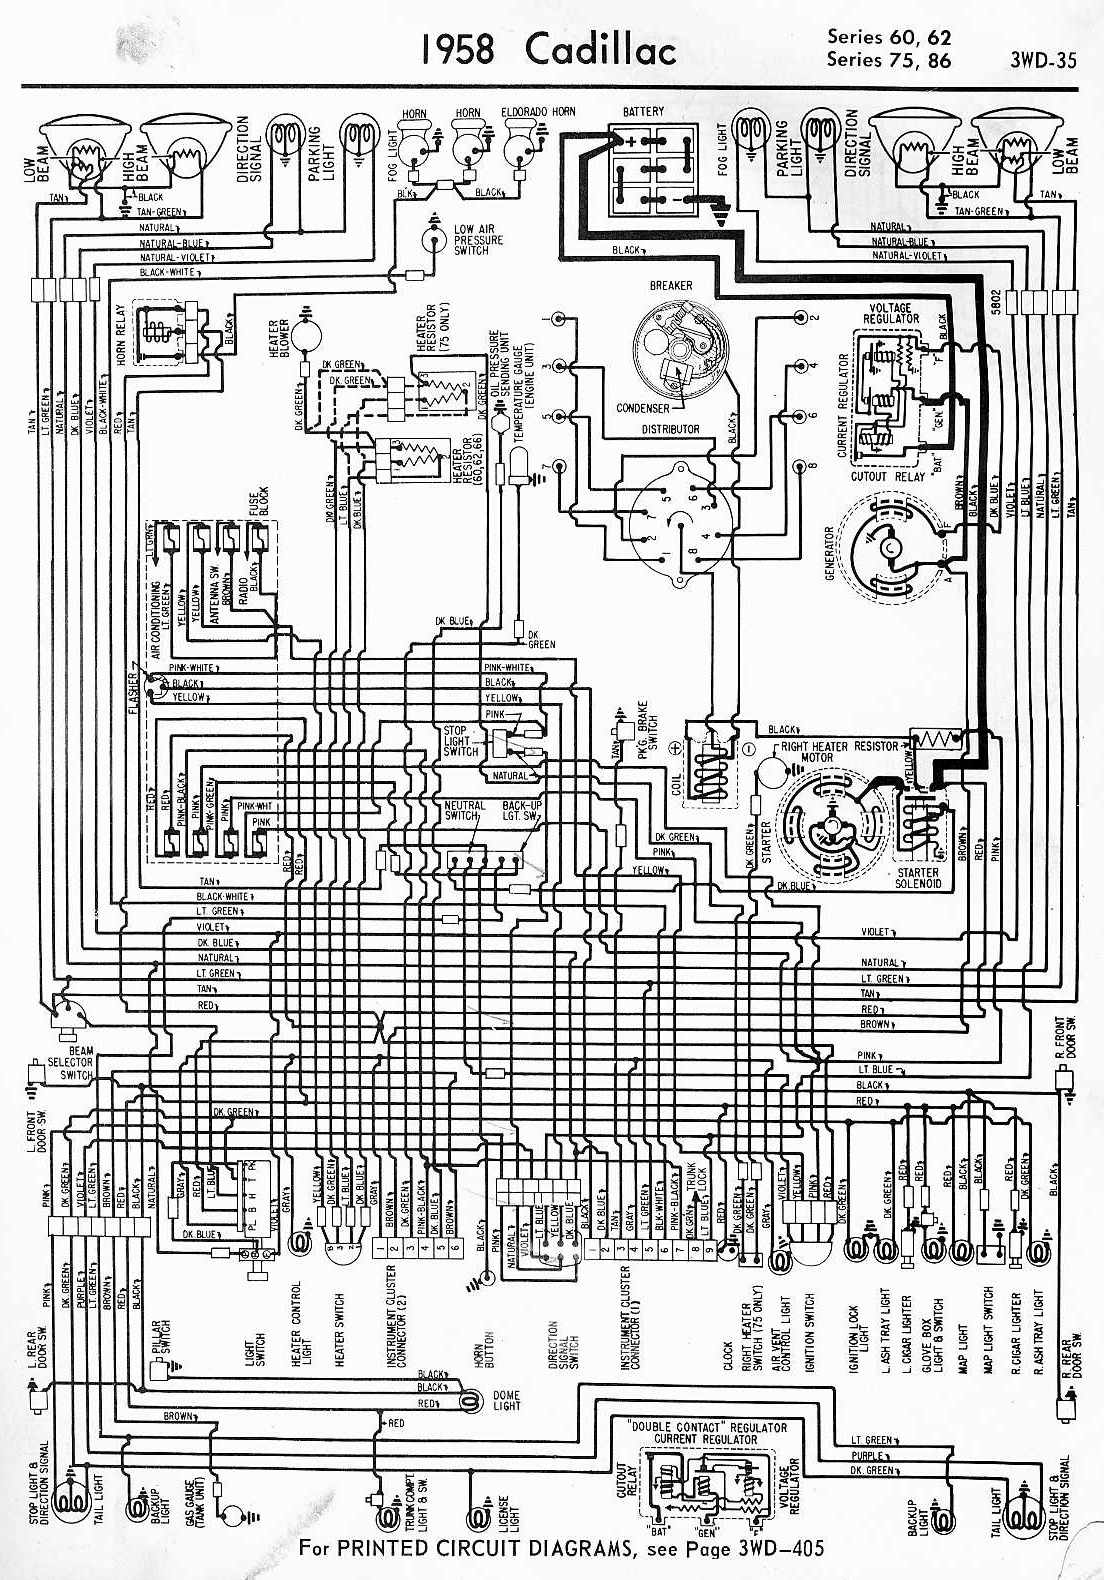 1957 Corvette Wiring Diagram Just Another Blog Chevy Harness For Ignition Cadillac Free Download Schematic Diagrams Rh 71 Jessicadonath De Switch